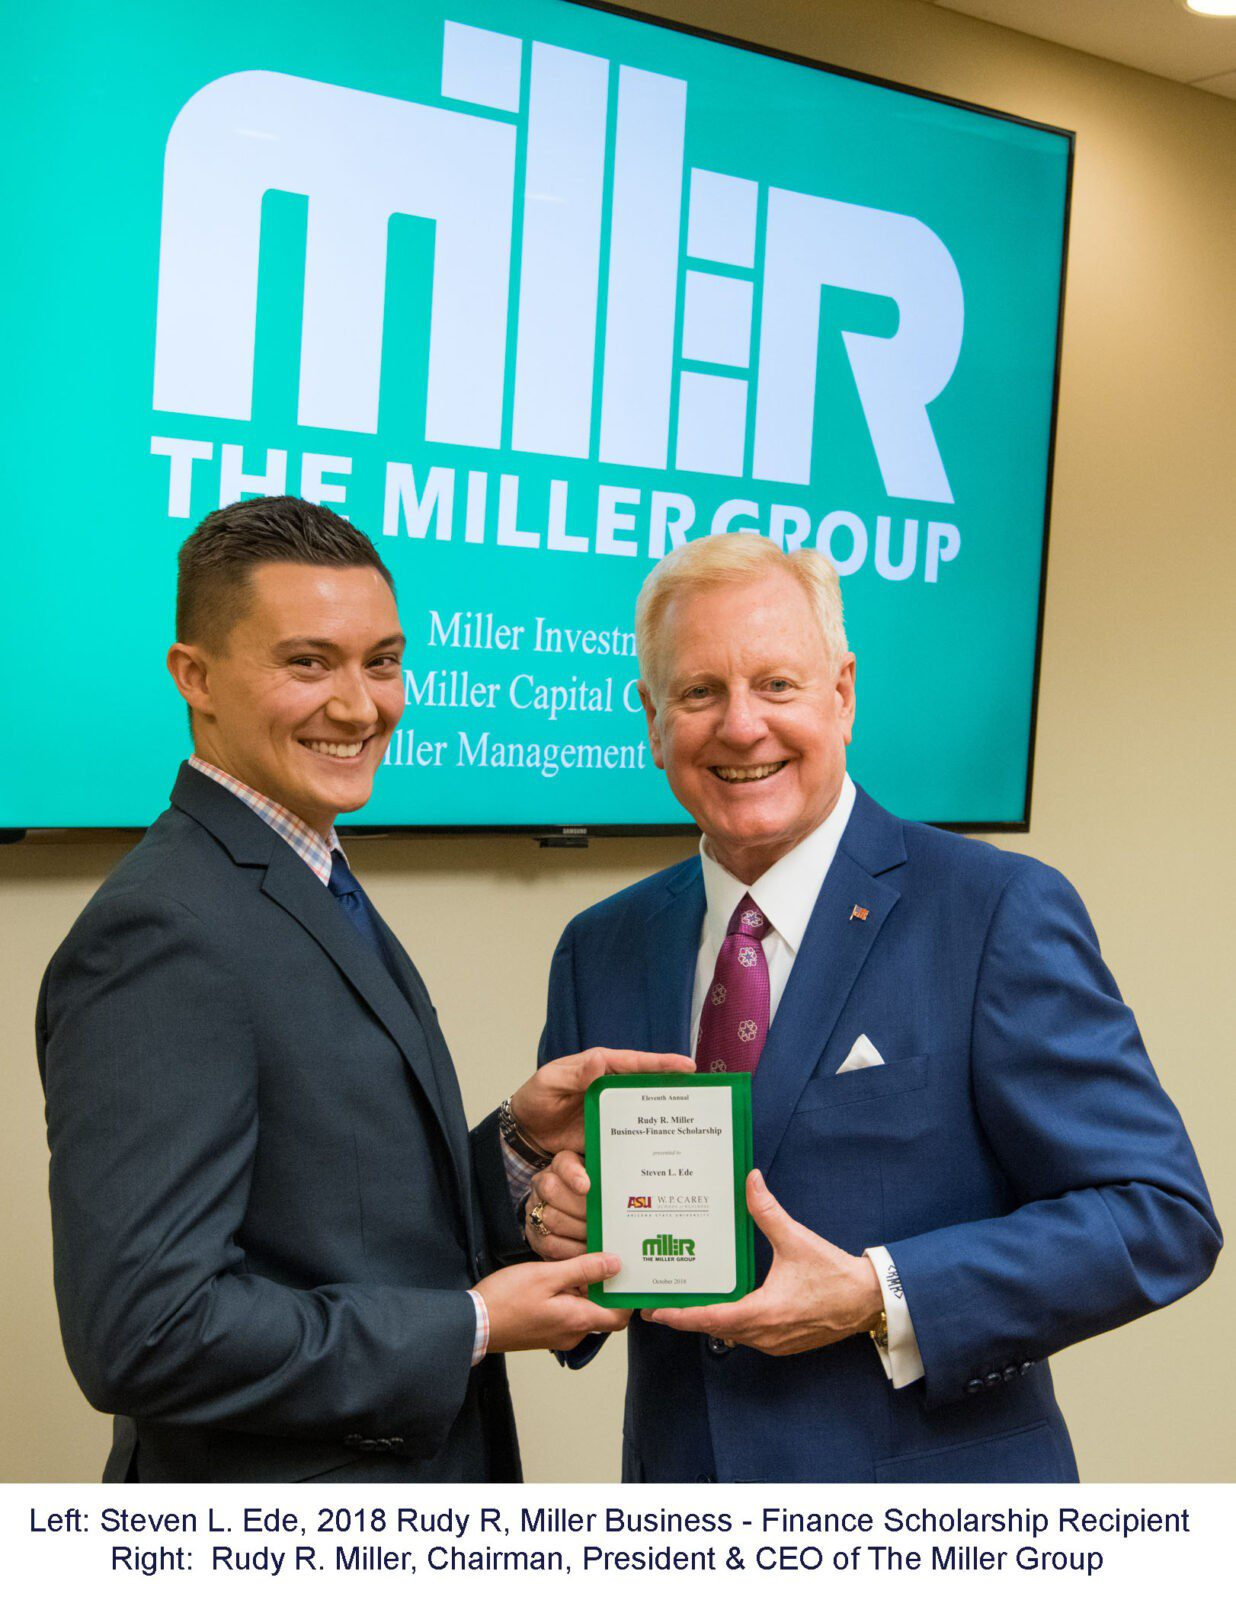 The Miller Group Awards Eleventh Annual Rudy R. Miller Business – Finance Scholarship to Arizona State University Student